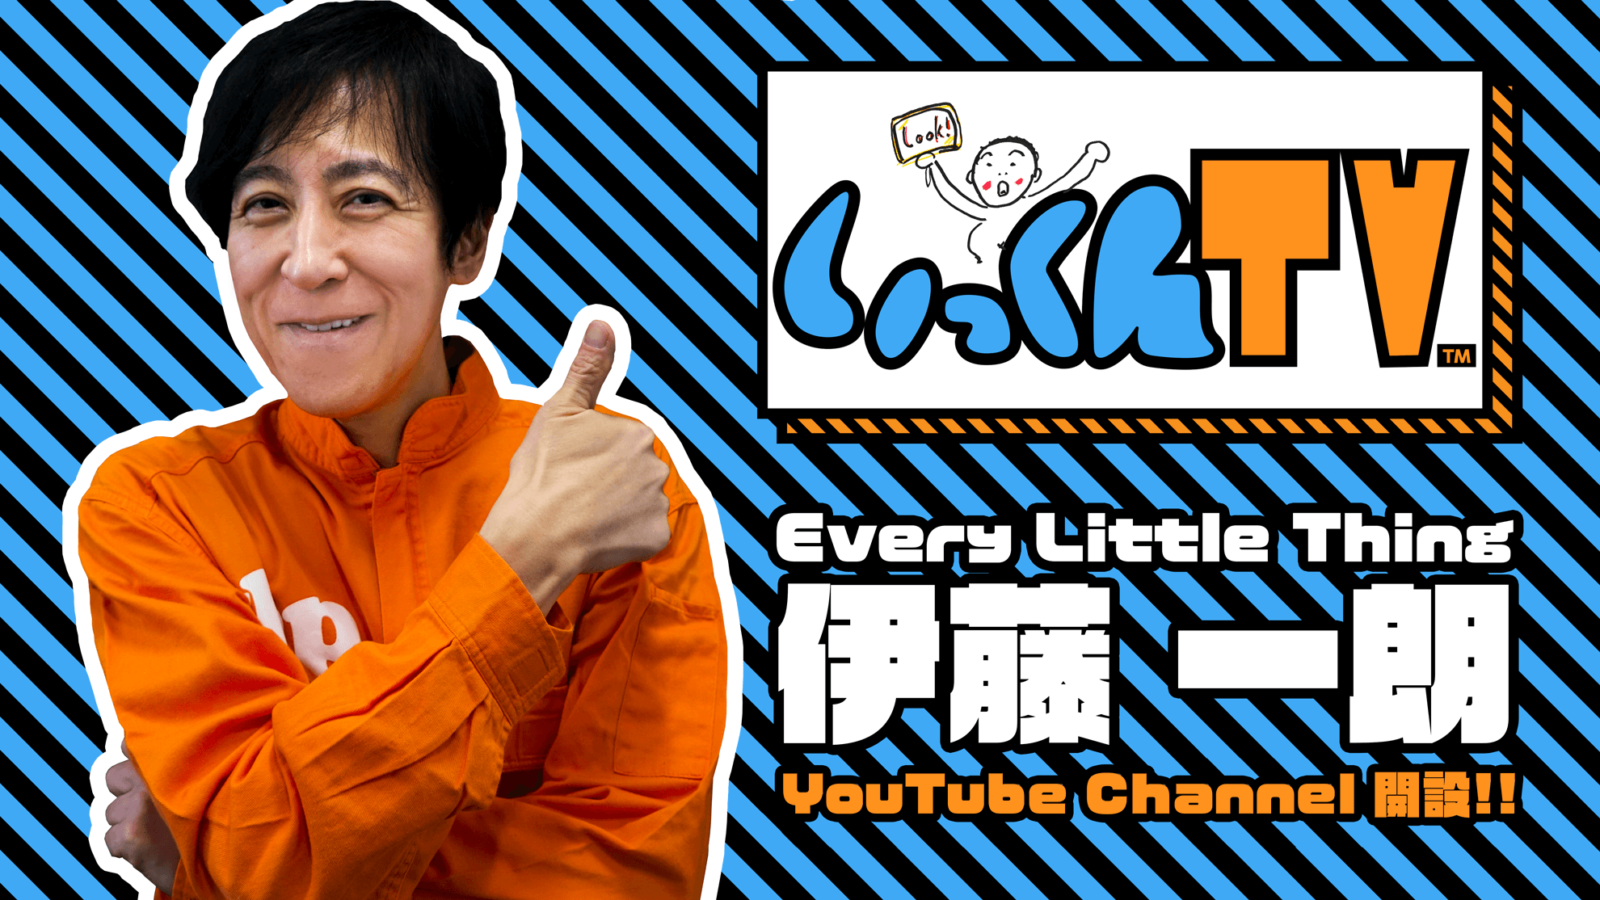 Every Little Thing 伊藤 一朗 YouTubeチャンネル開設